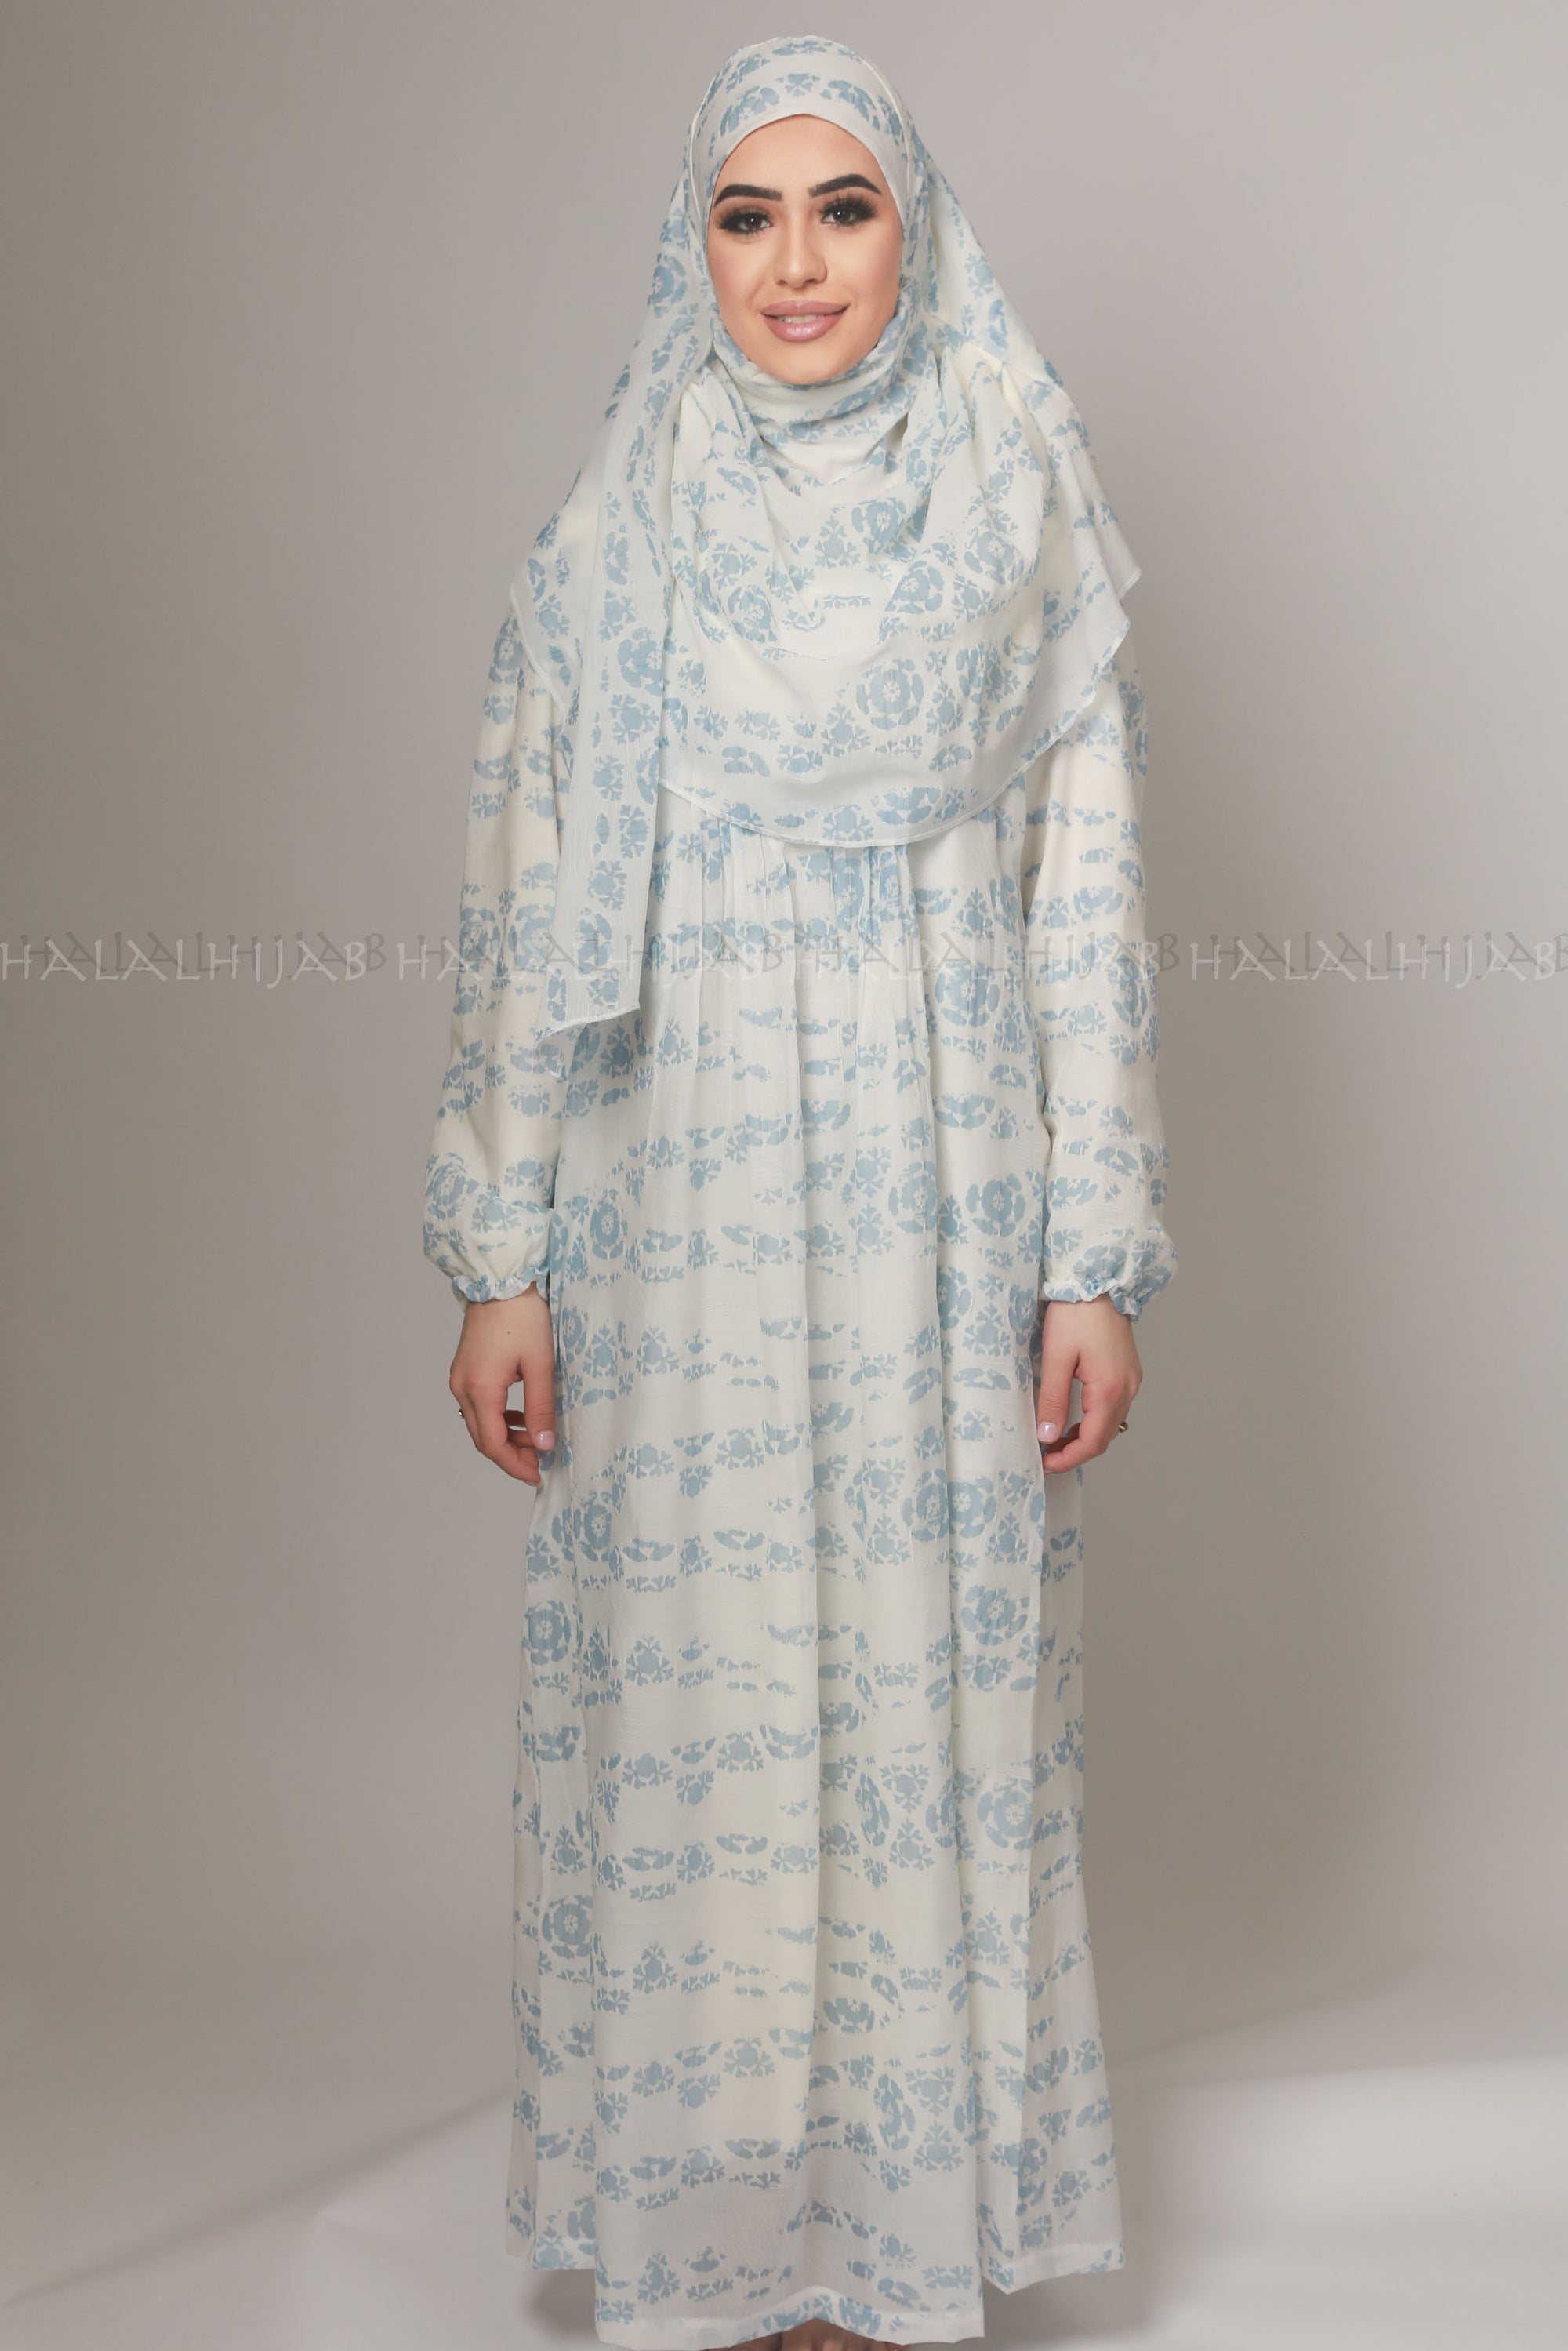 Sky Blue Floral Print Muslimah Dress